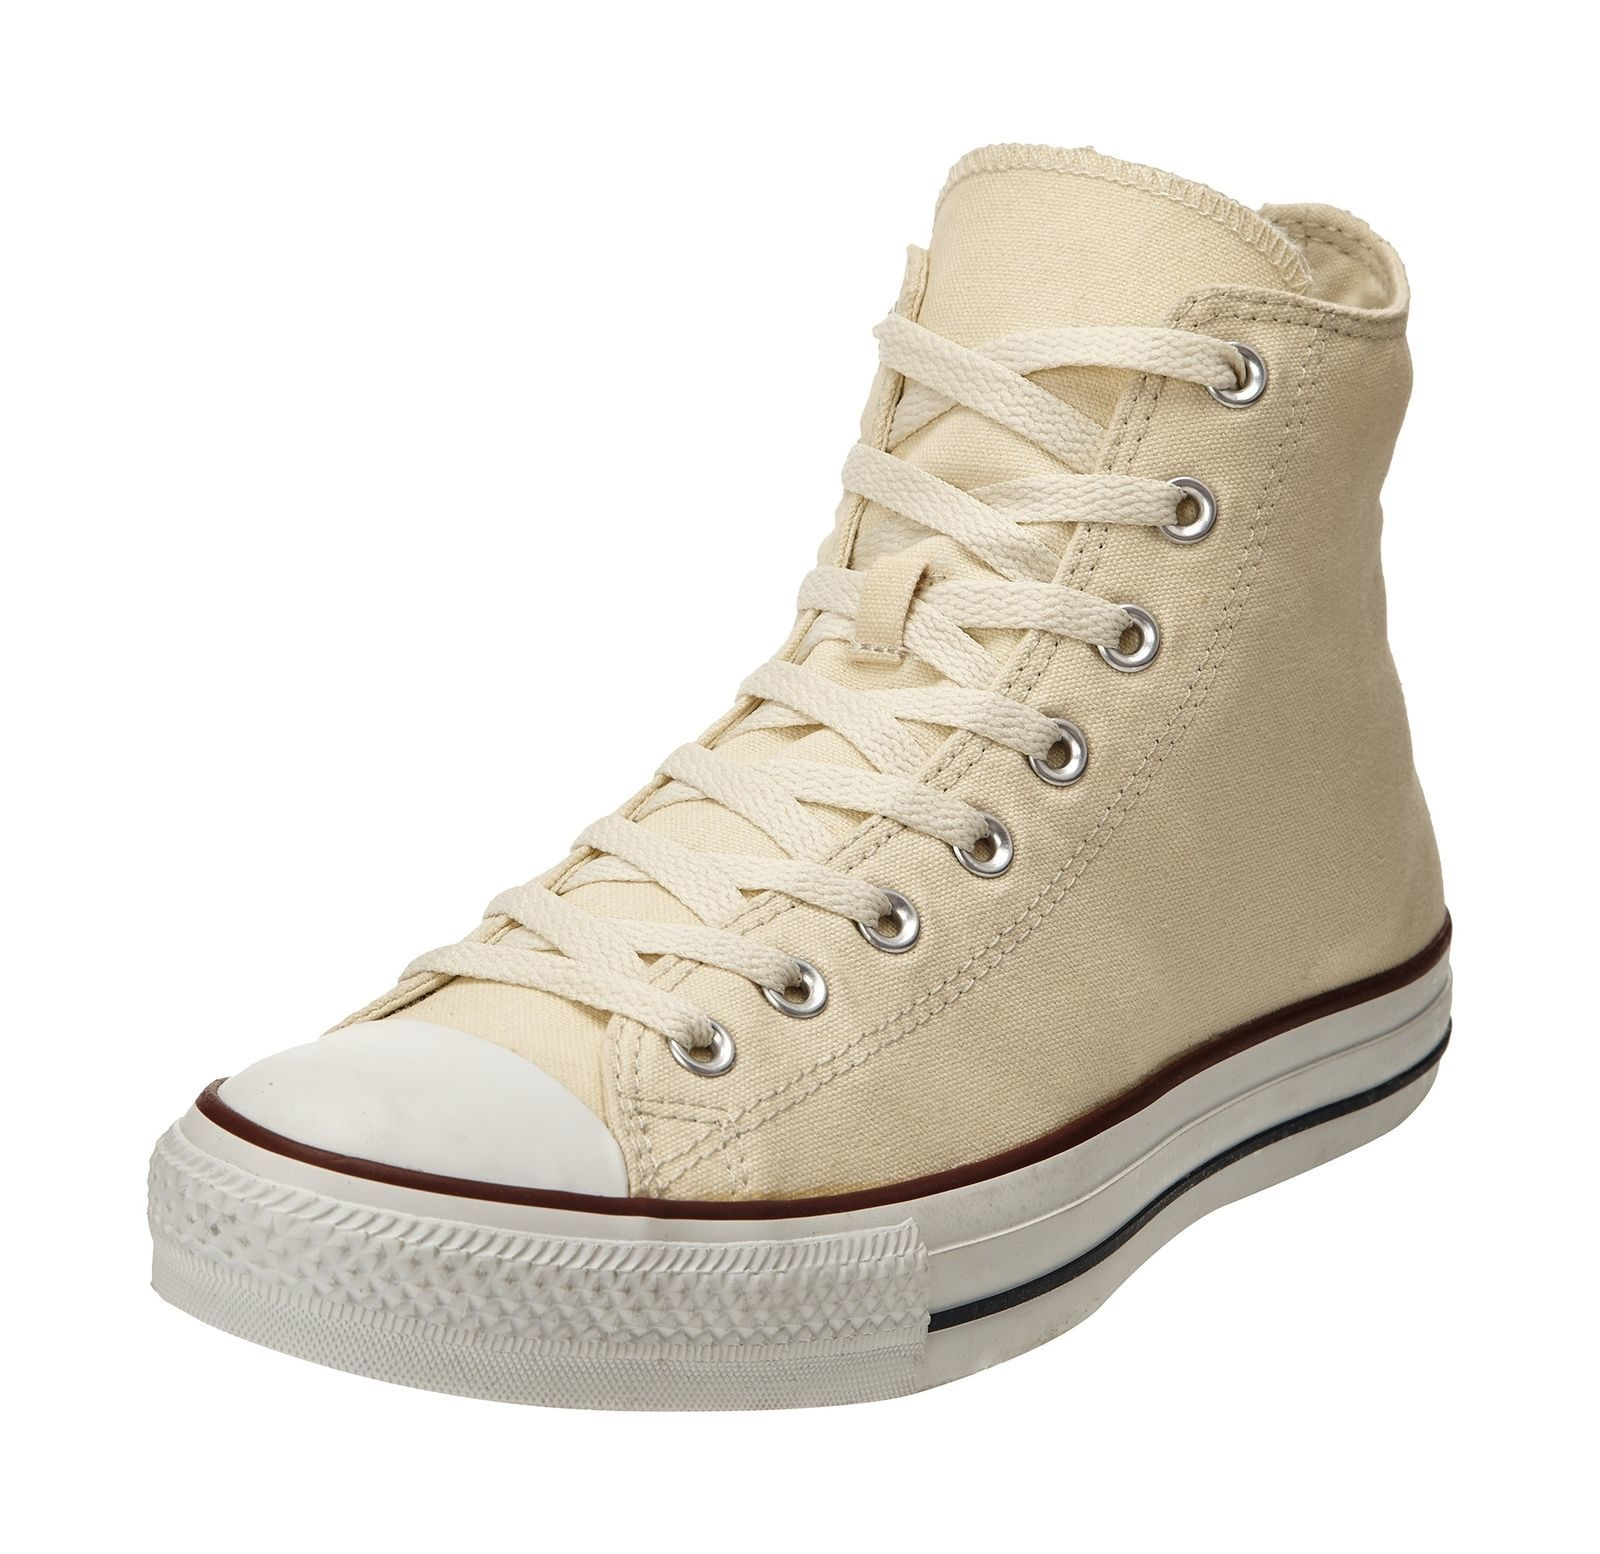 Converse Unisex Adults Ctas Core Trainers Hi High Trainers Core Avorio (Elfenbein (Ivory)) 6f295f